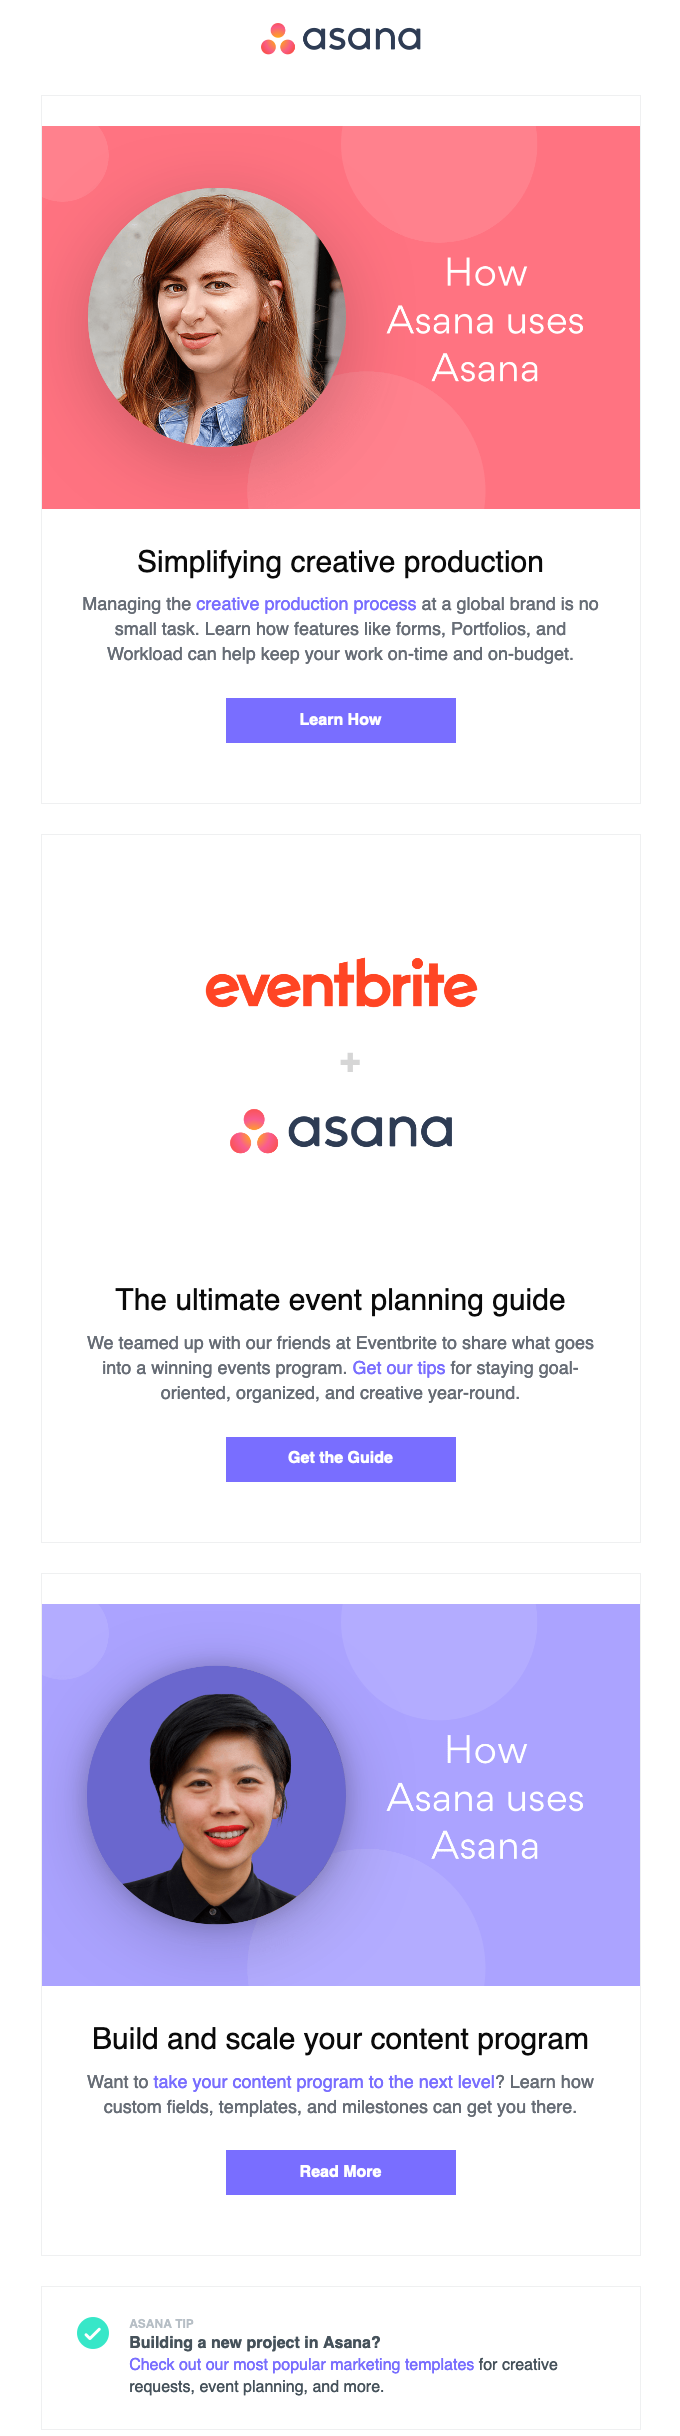 asana marketing email user onboarding drip example